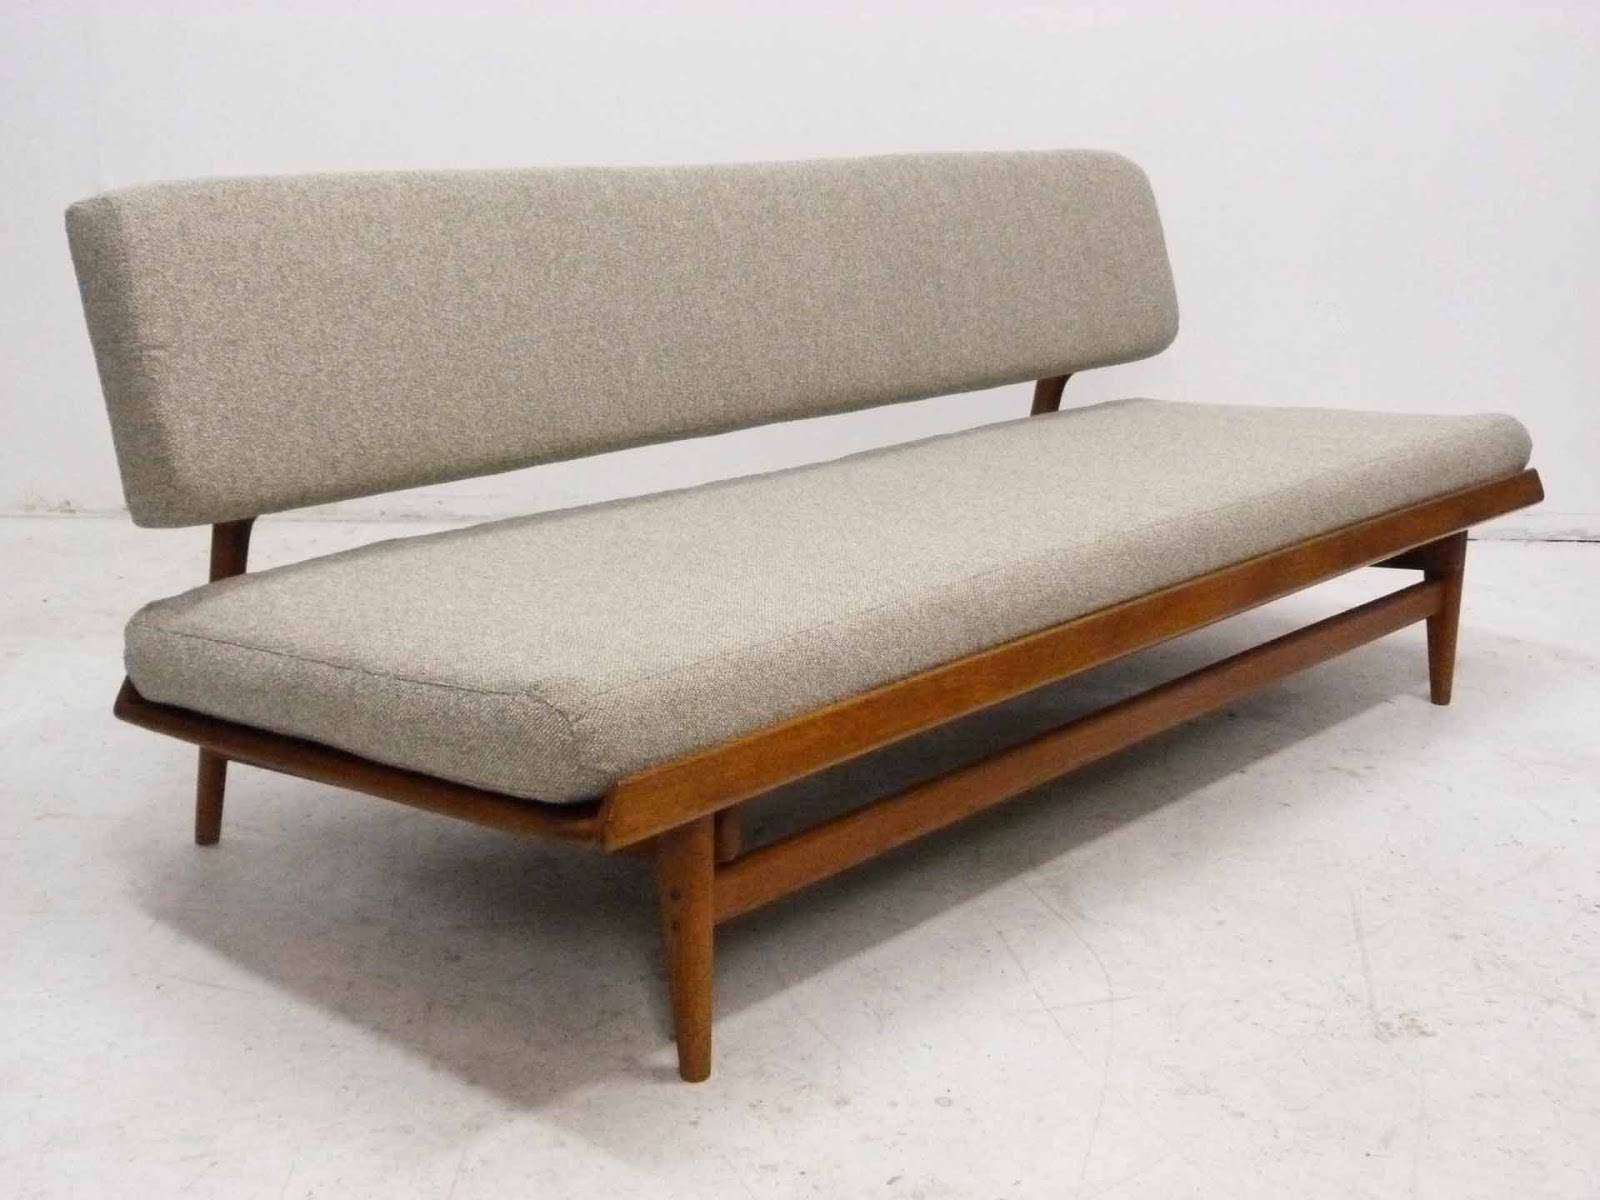 J.O. Carlsson Midcentury Sofa Daybed Angle View